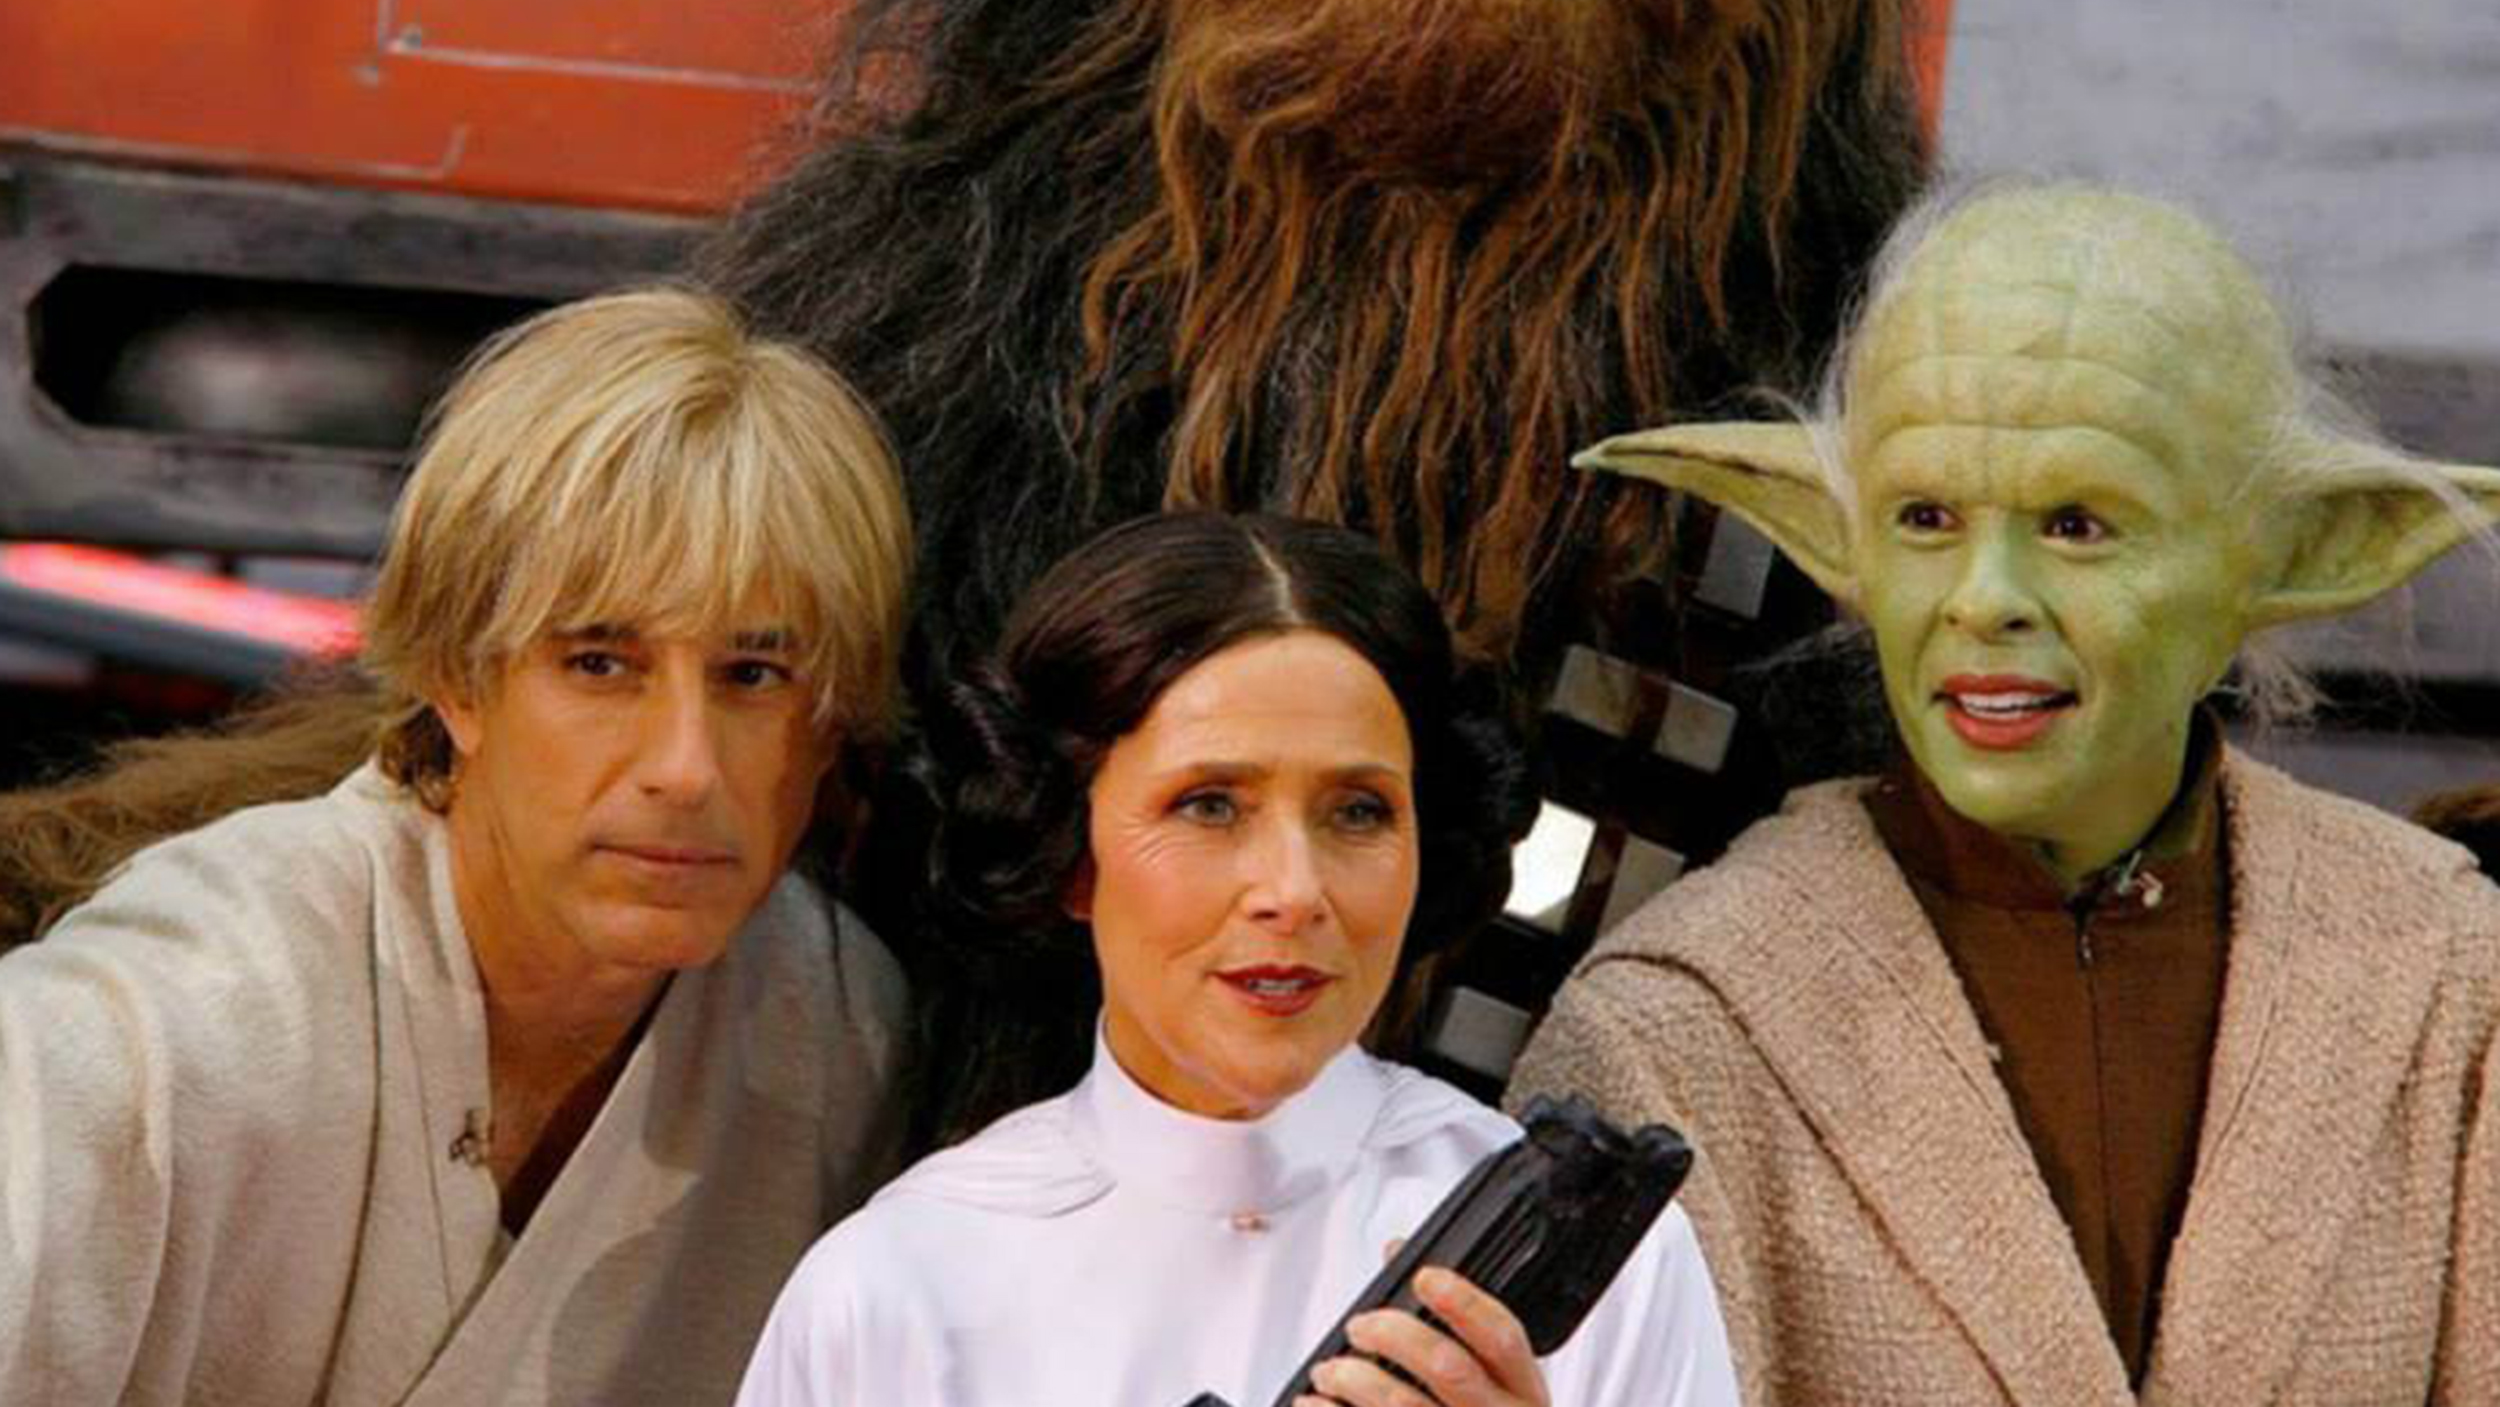 Matt Lauer in drag, Hoda as Yoda: Relive 20 years of Halloween on ...